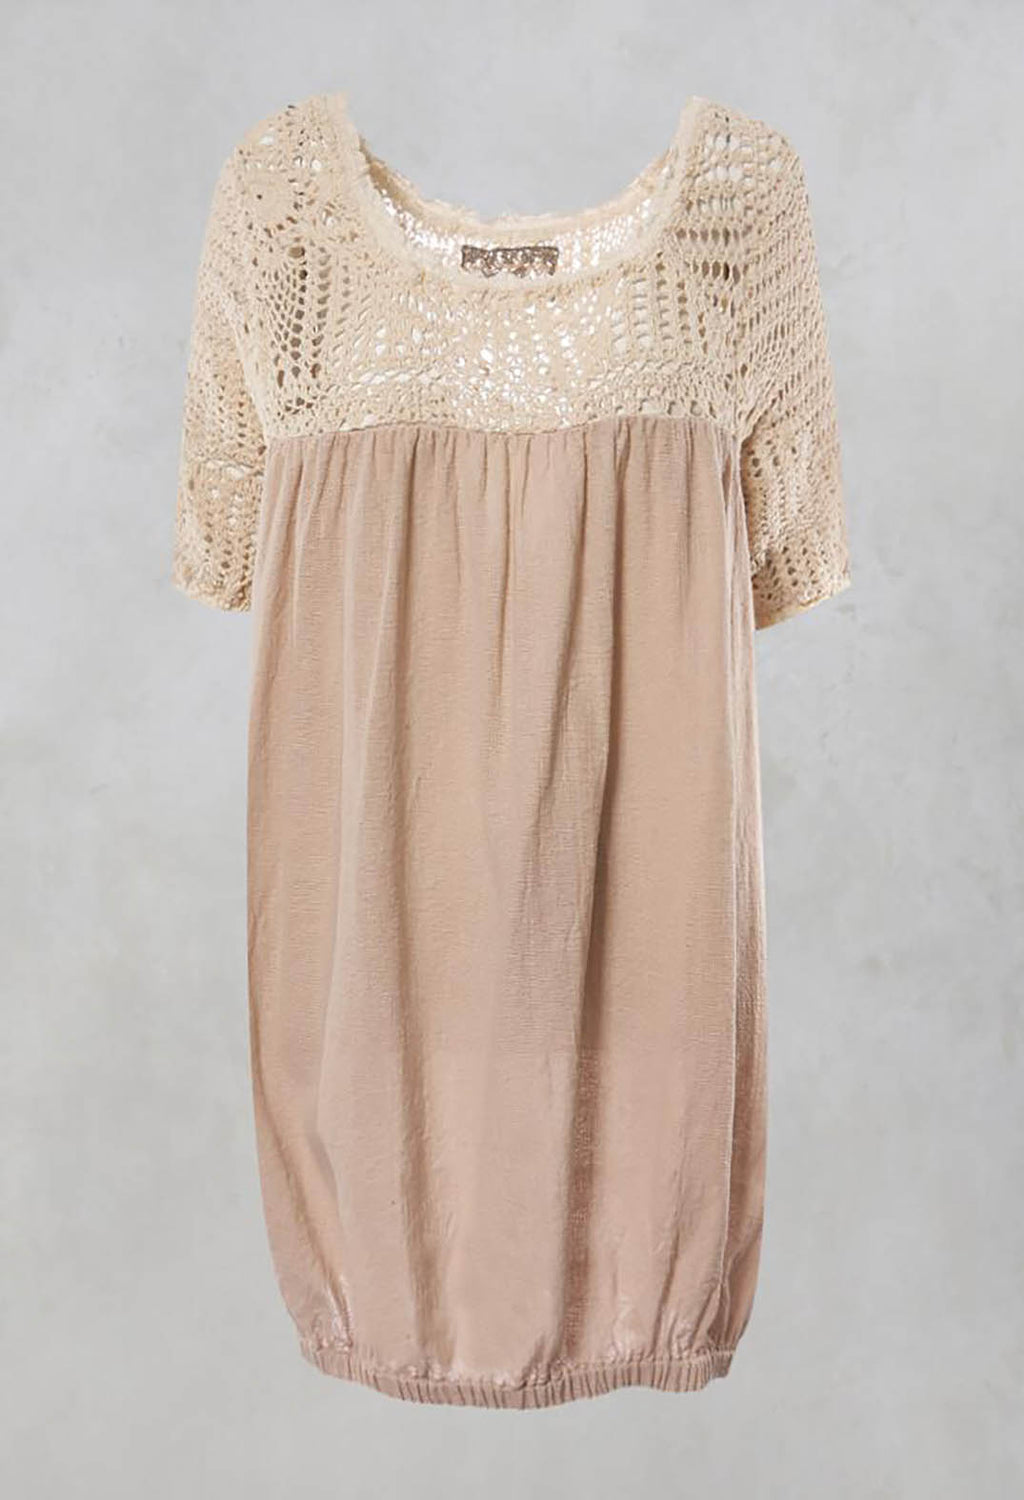 Aude Crochet Top with Contrast Fabric in Chambre Rose